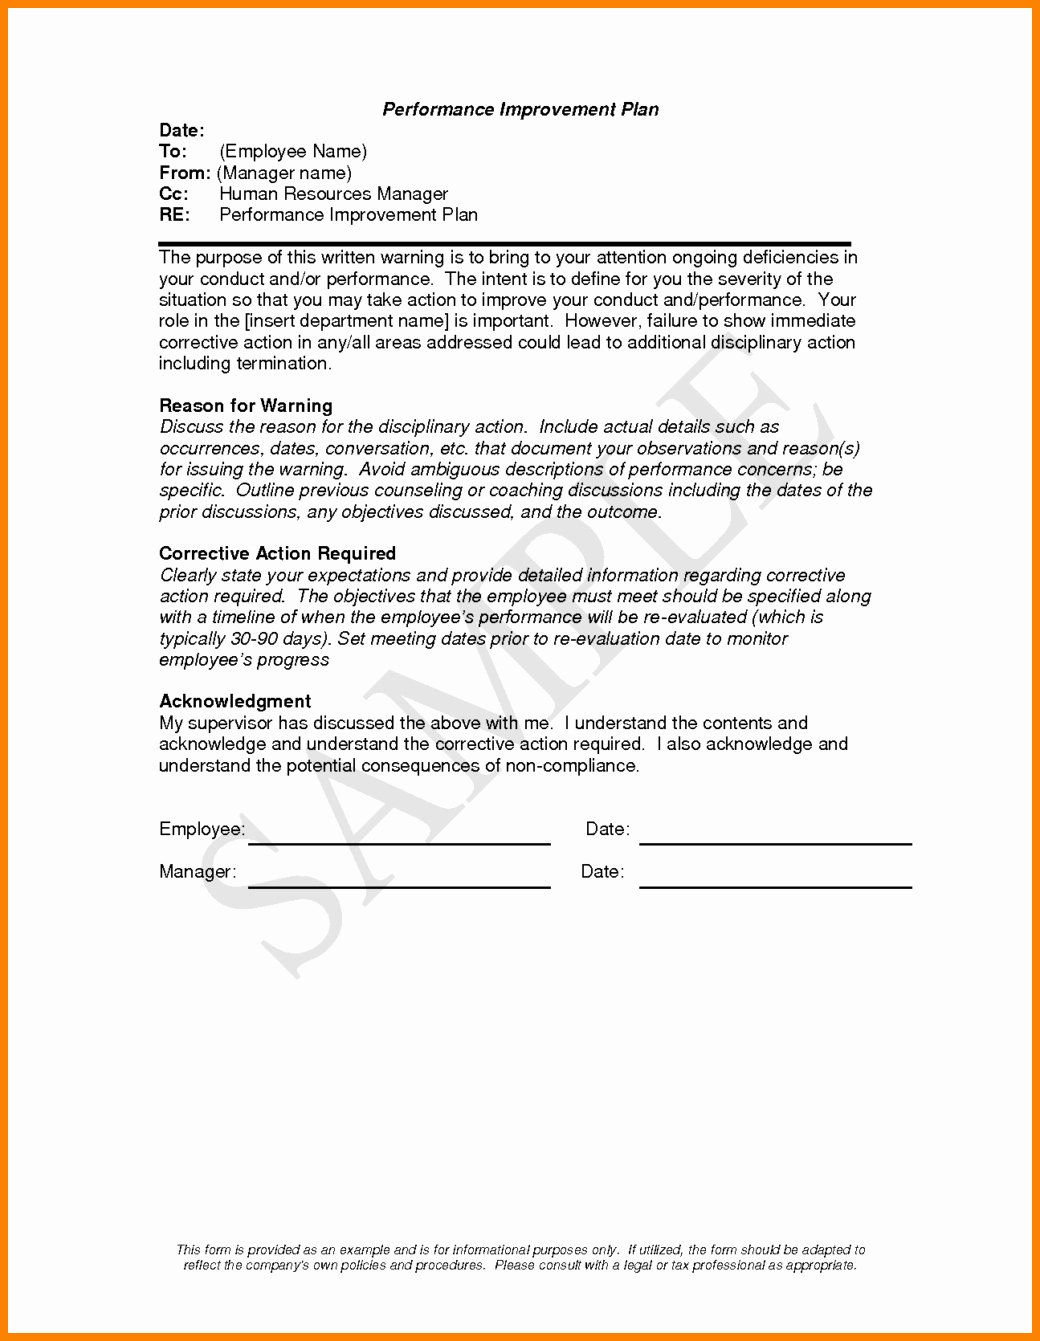 Employee Performance Improvement Plan Template Unique Performance Improvement Plan Letter Template Examples